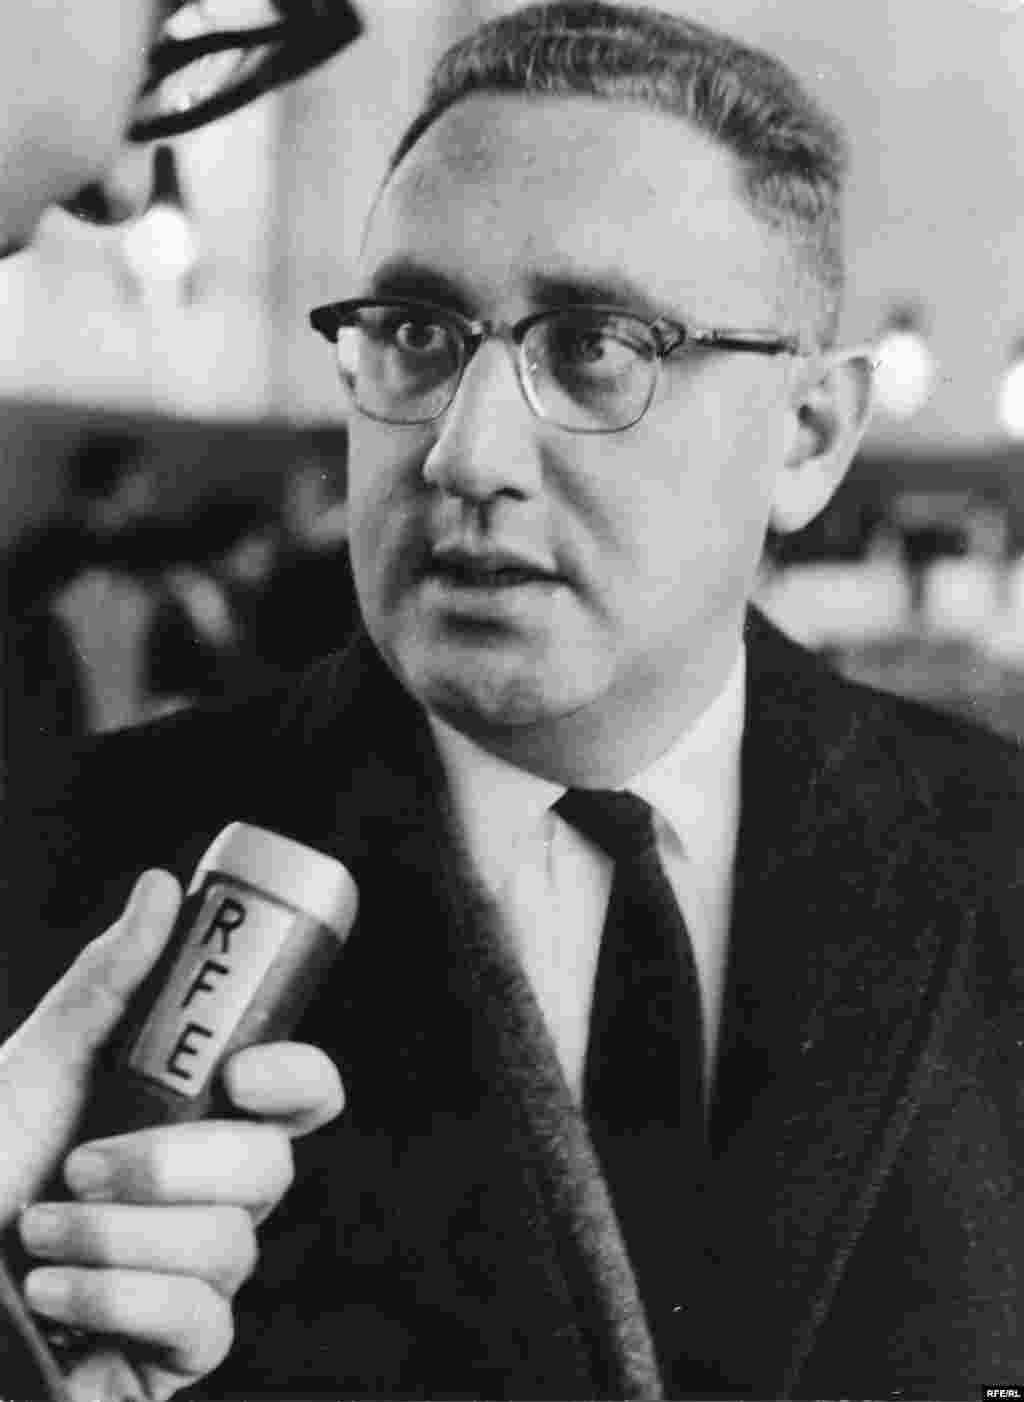 Future U.S. Secretary of State Henry Kissinger is interviewed by RFE in 1962.